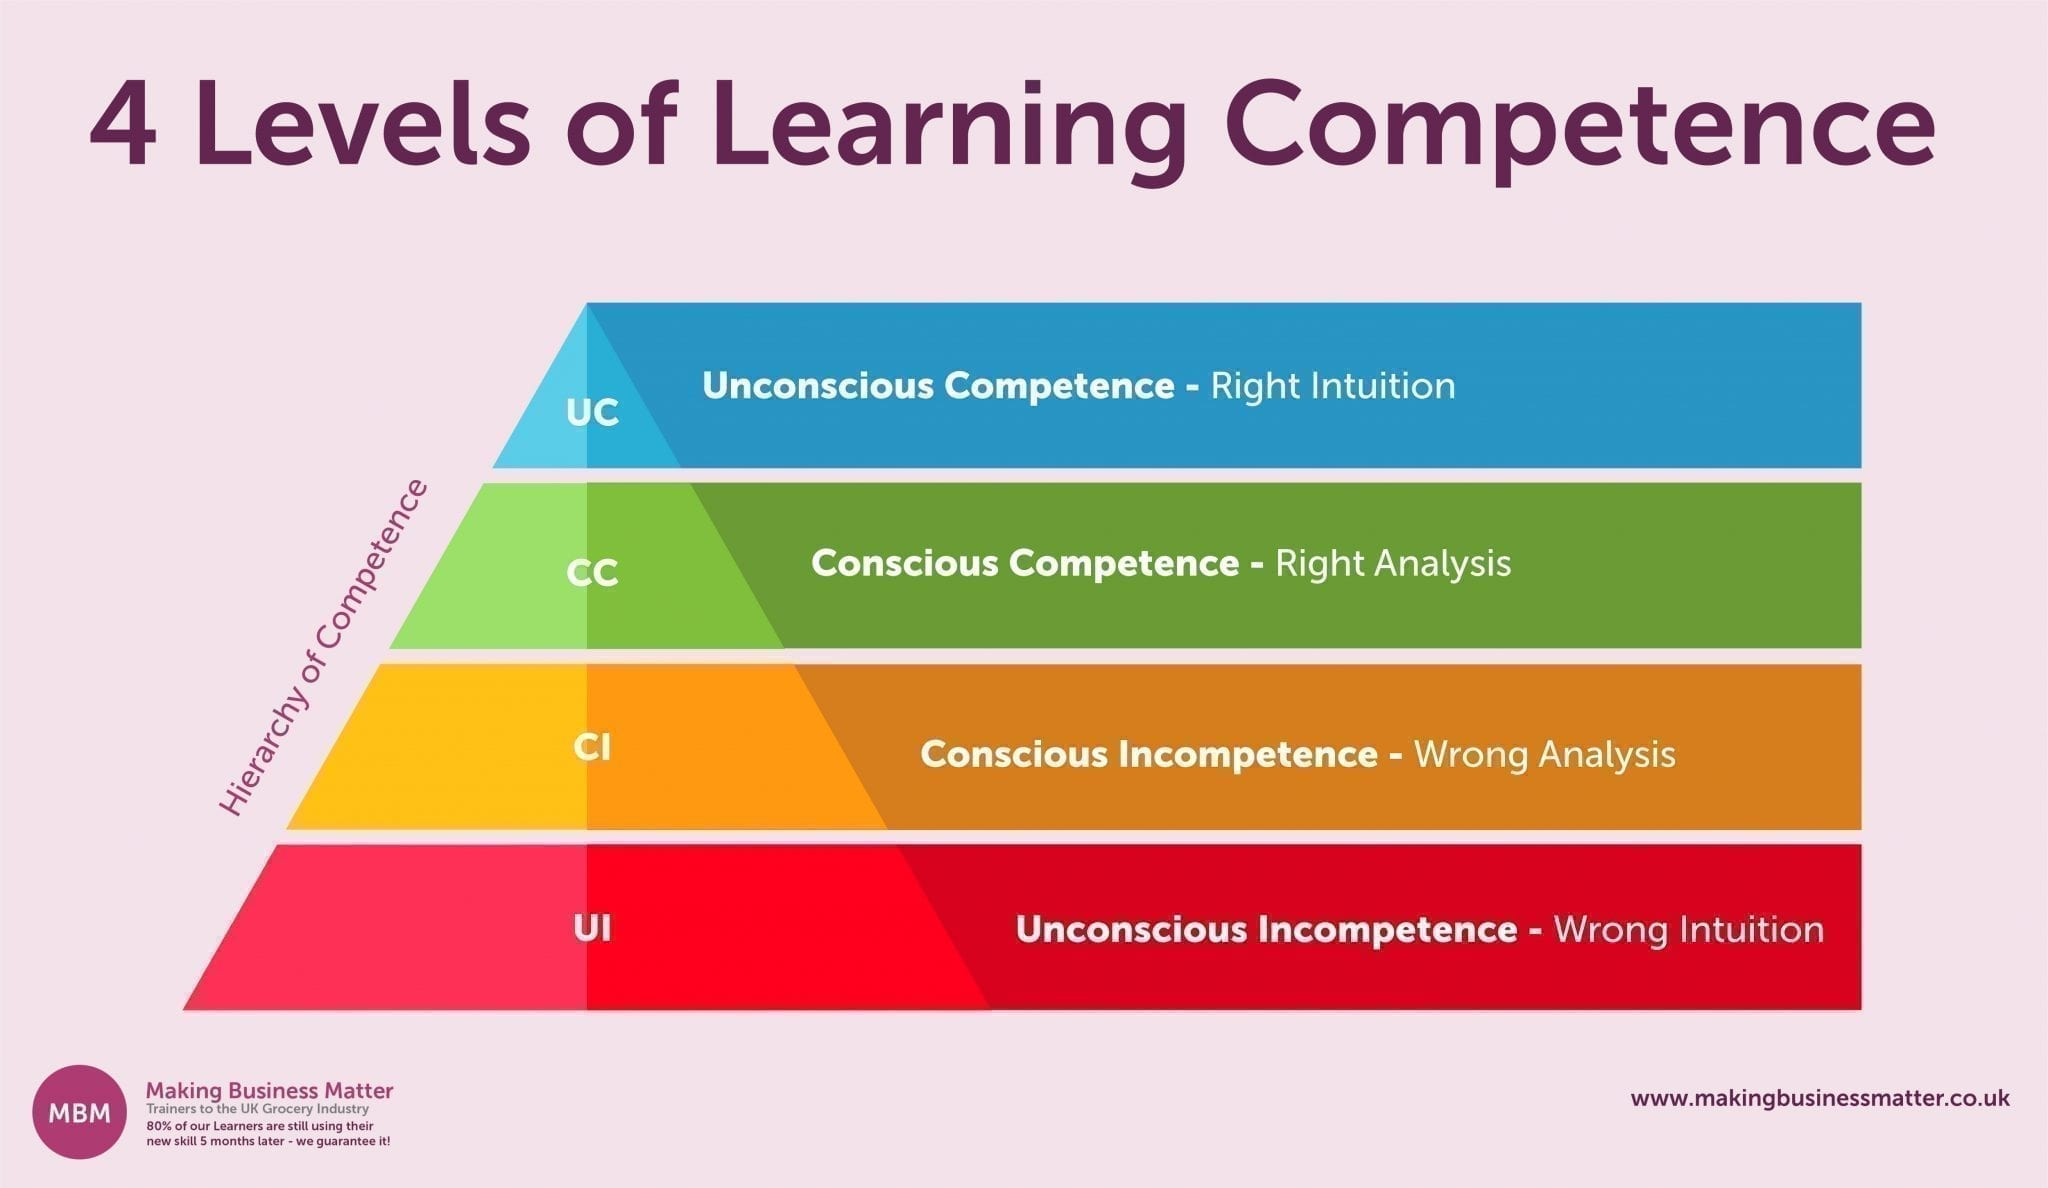 4 Levels of Learning Competence visualised as a triangle